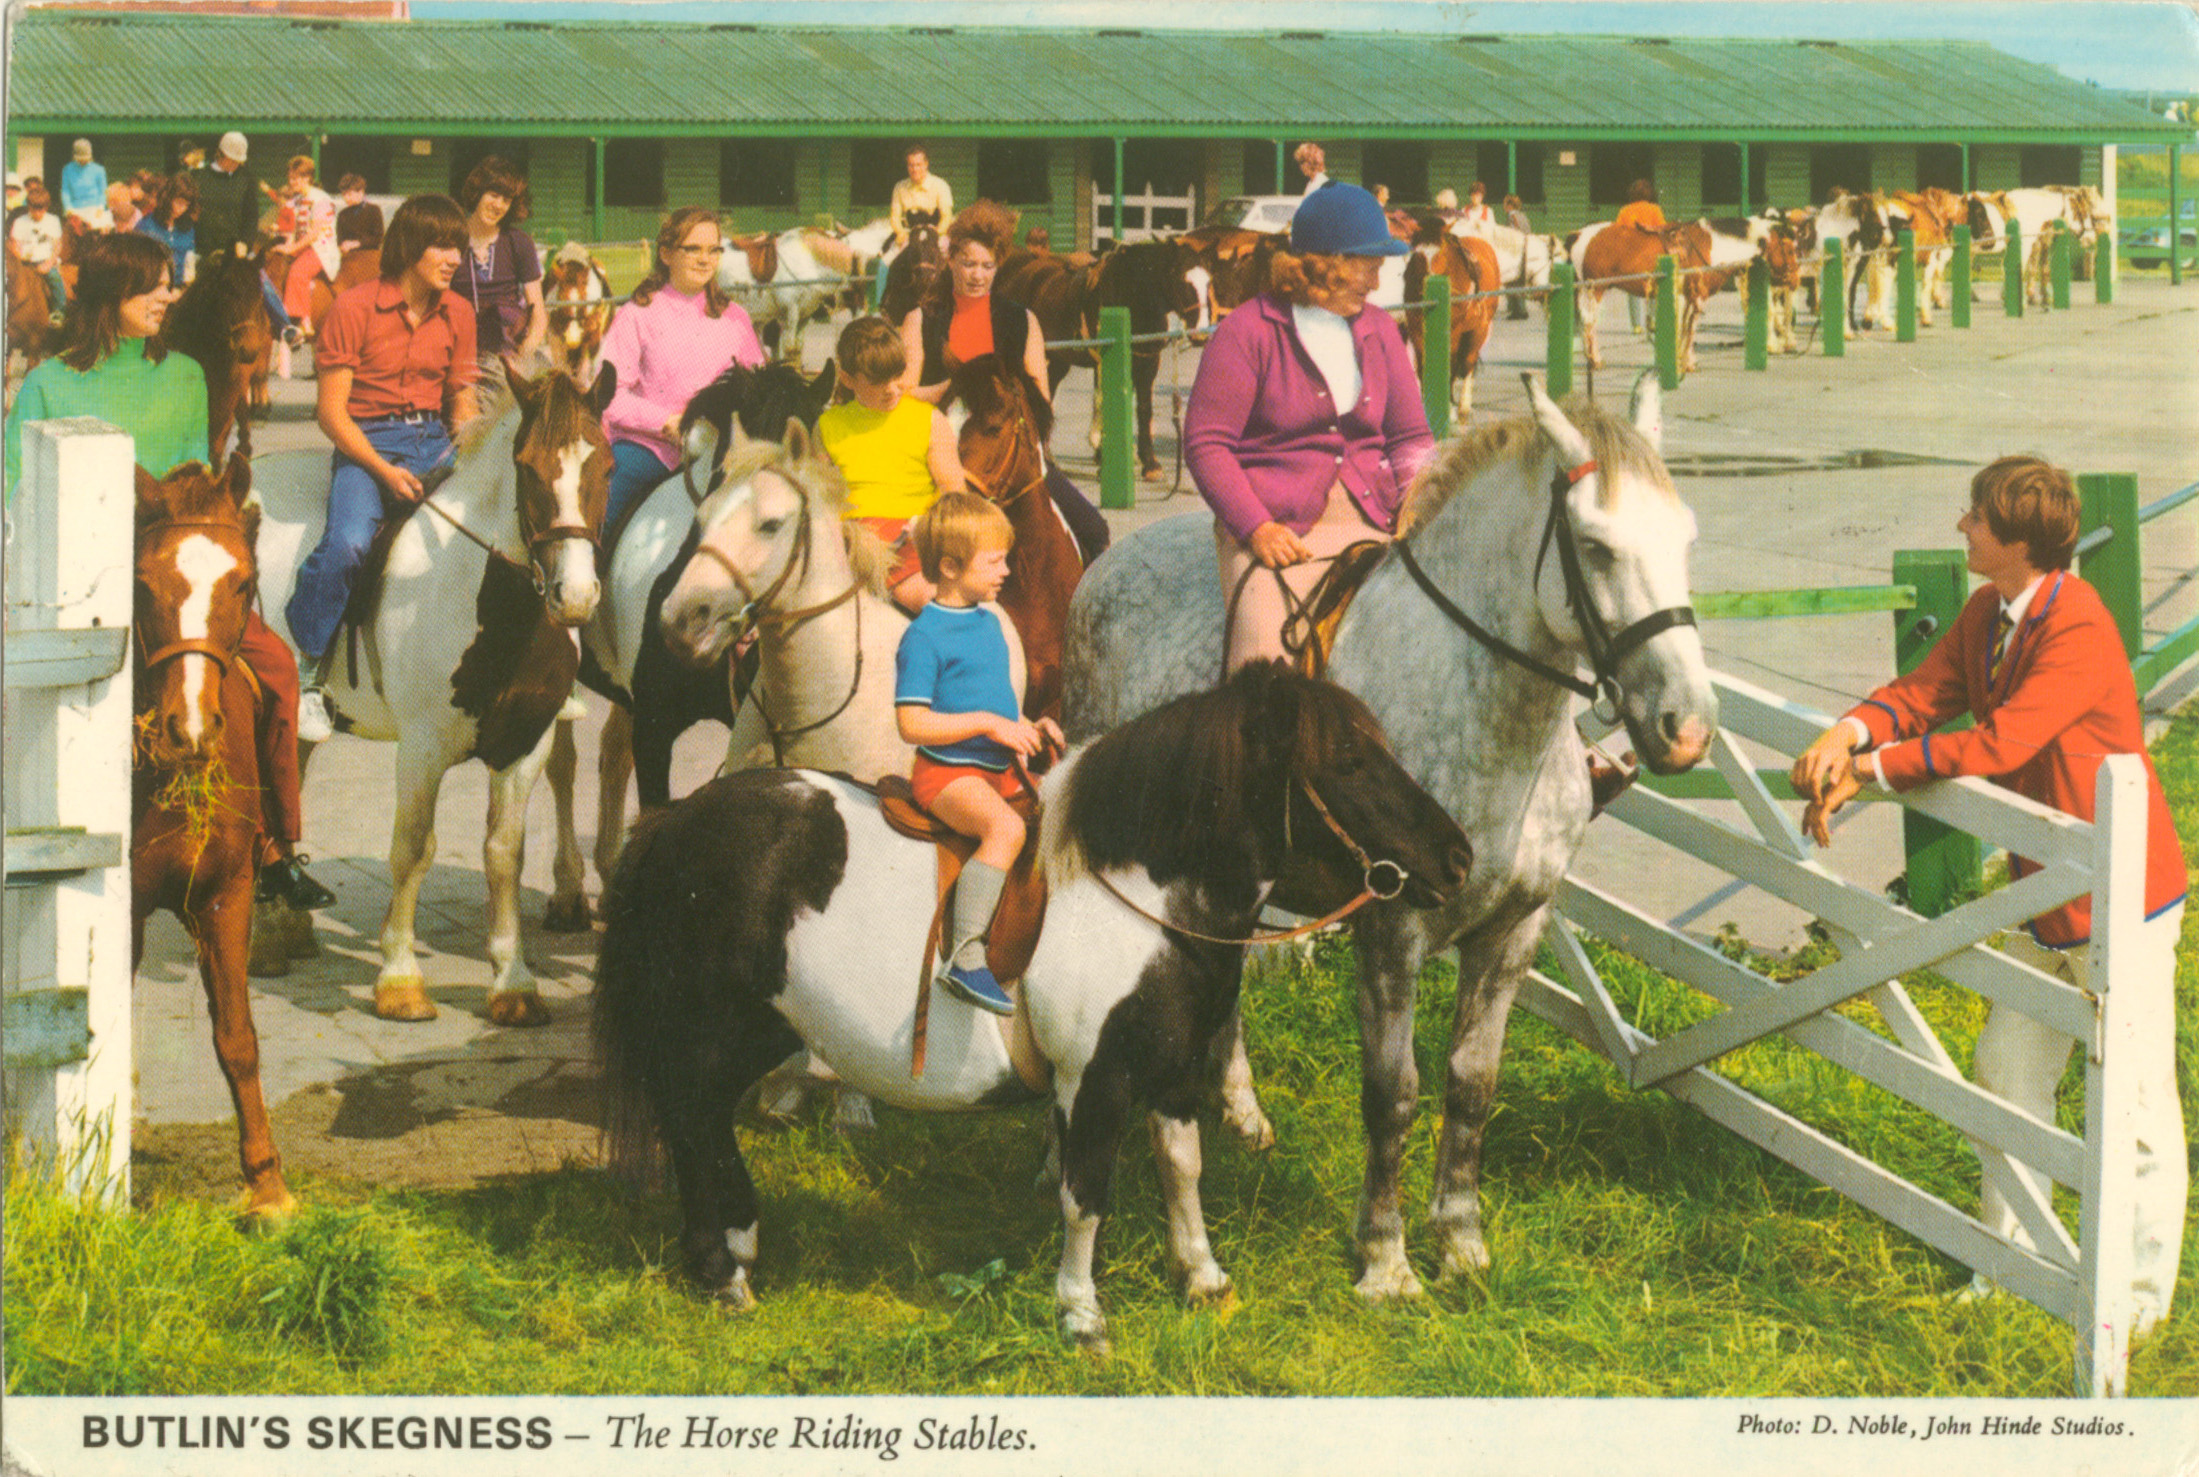 1983-butlins-skegness-postcard-b_6_3_2_2_2_97a